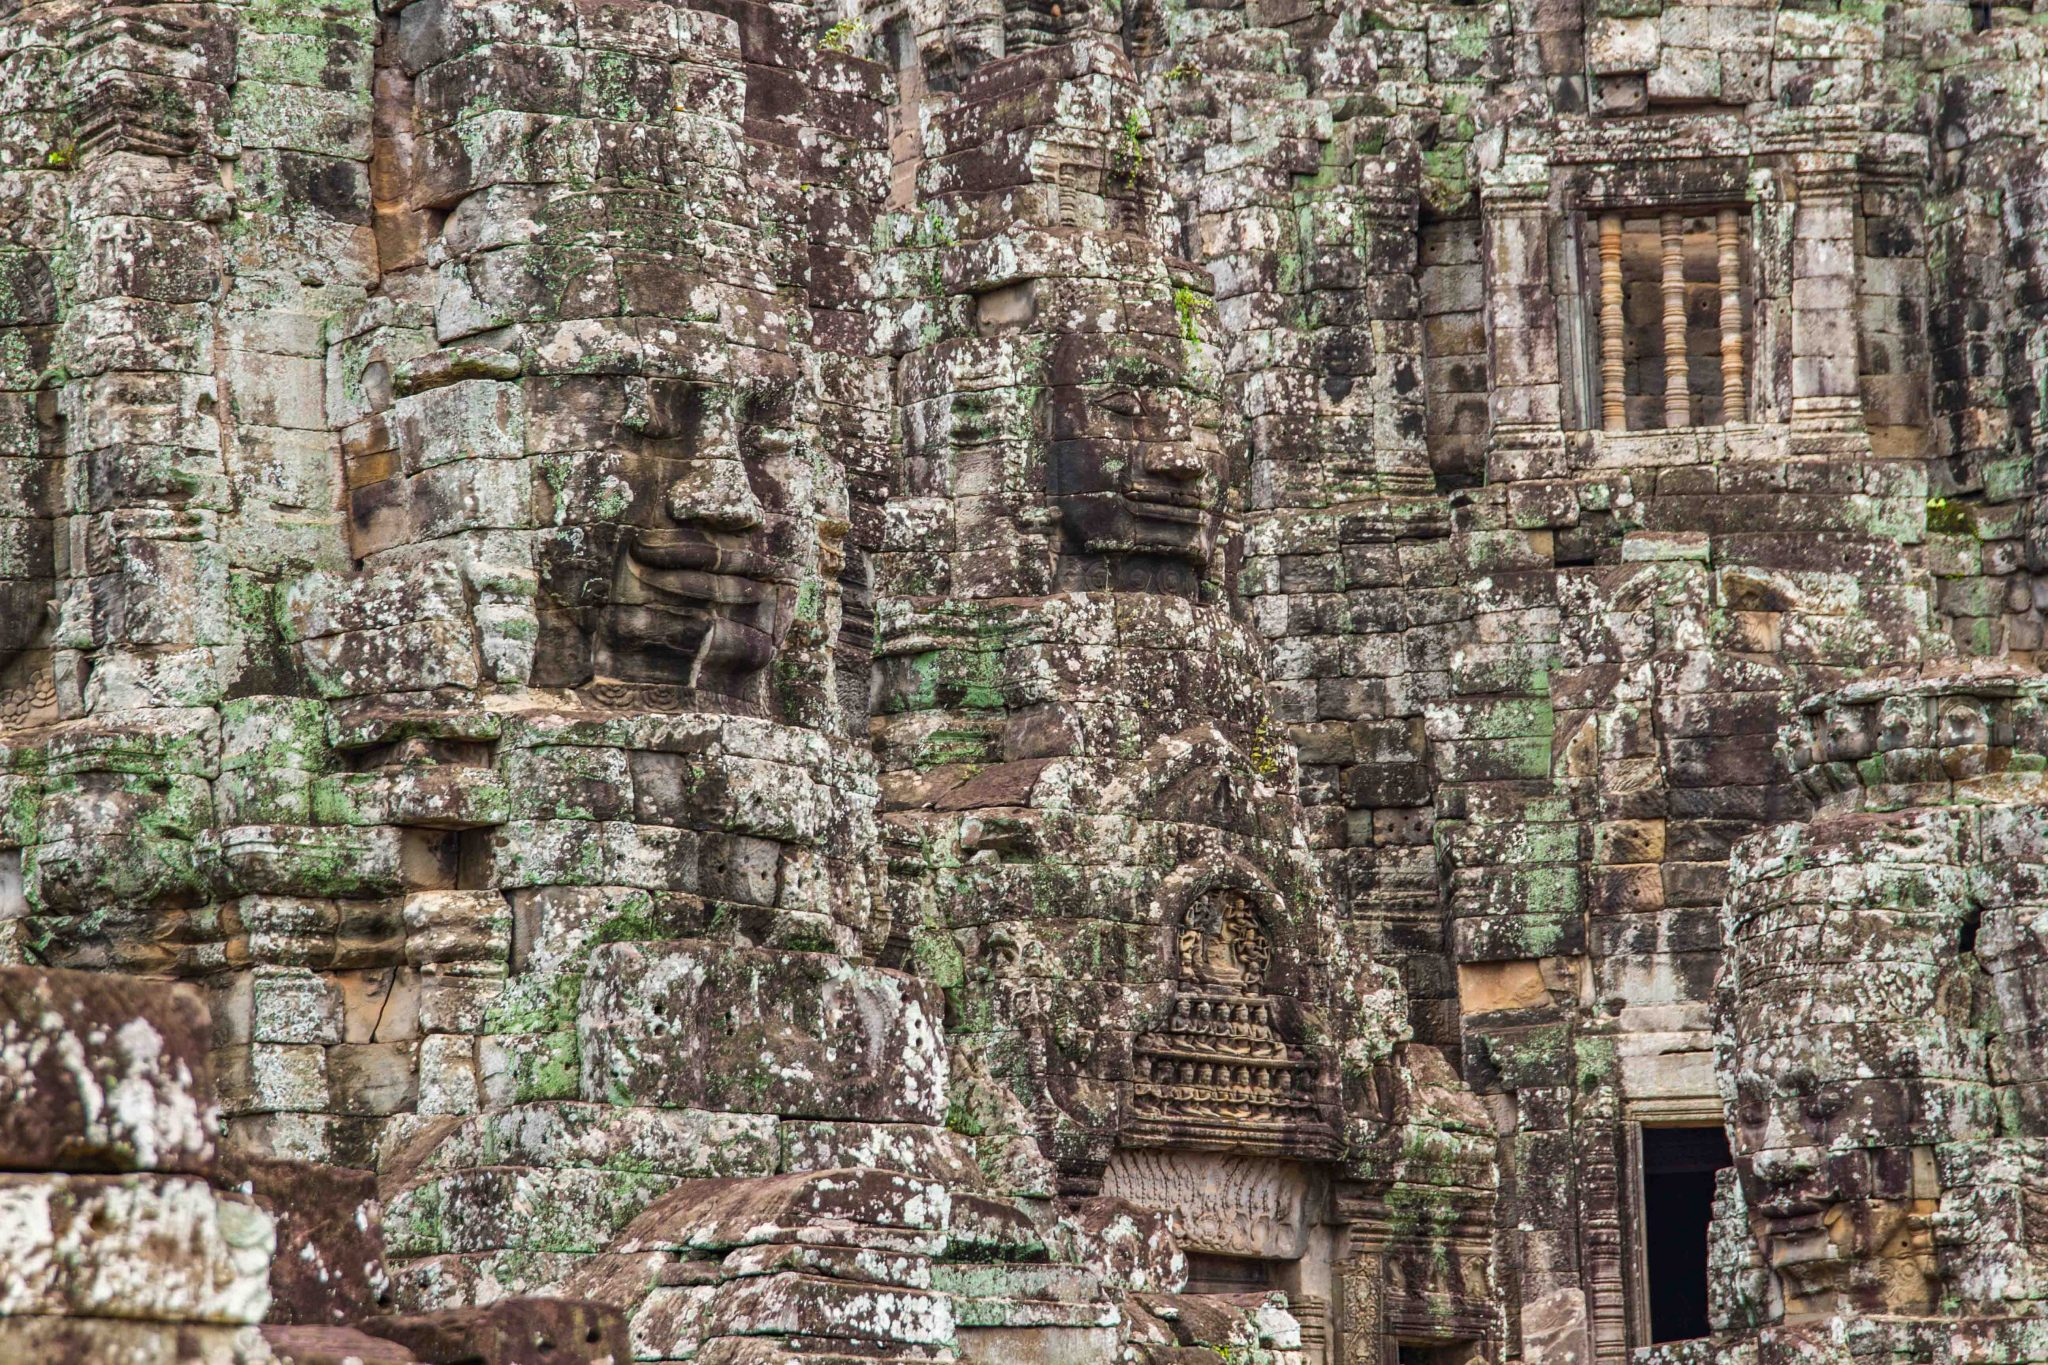 Bayon Faces at Angkor Thom Cambodia